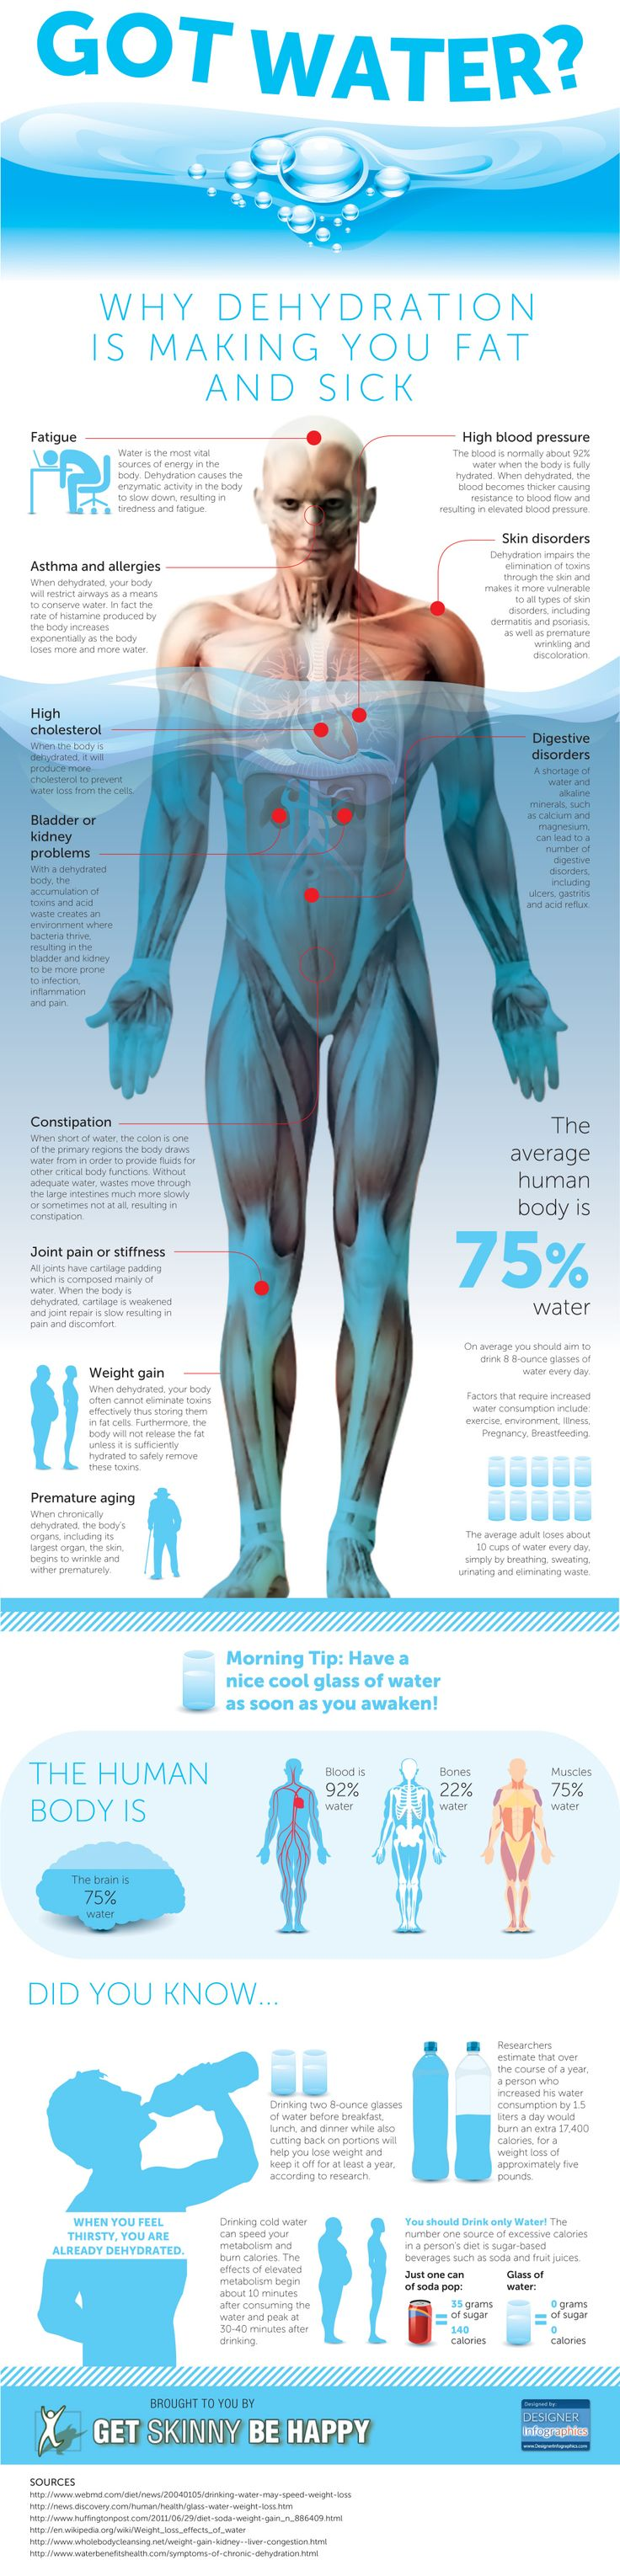 Why Dehydration is making you fat. Drink more water!